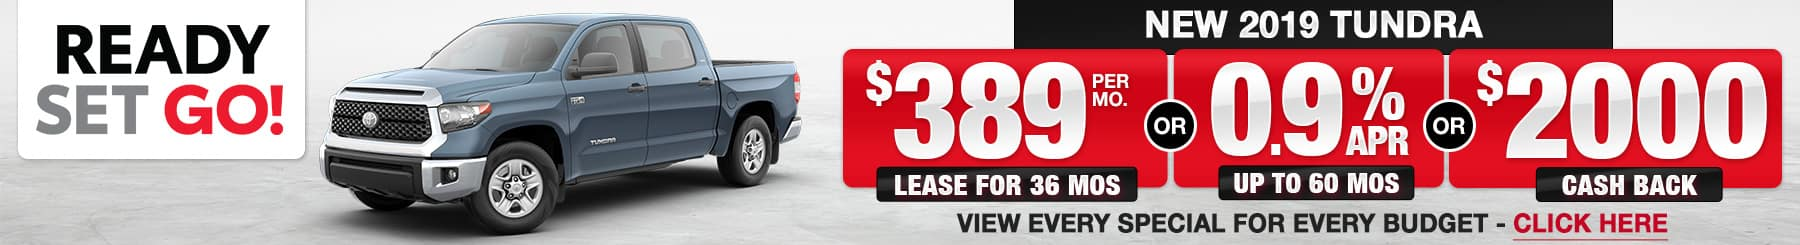 2019 Tundra Lease or Finance Offers